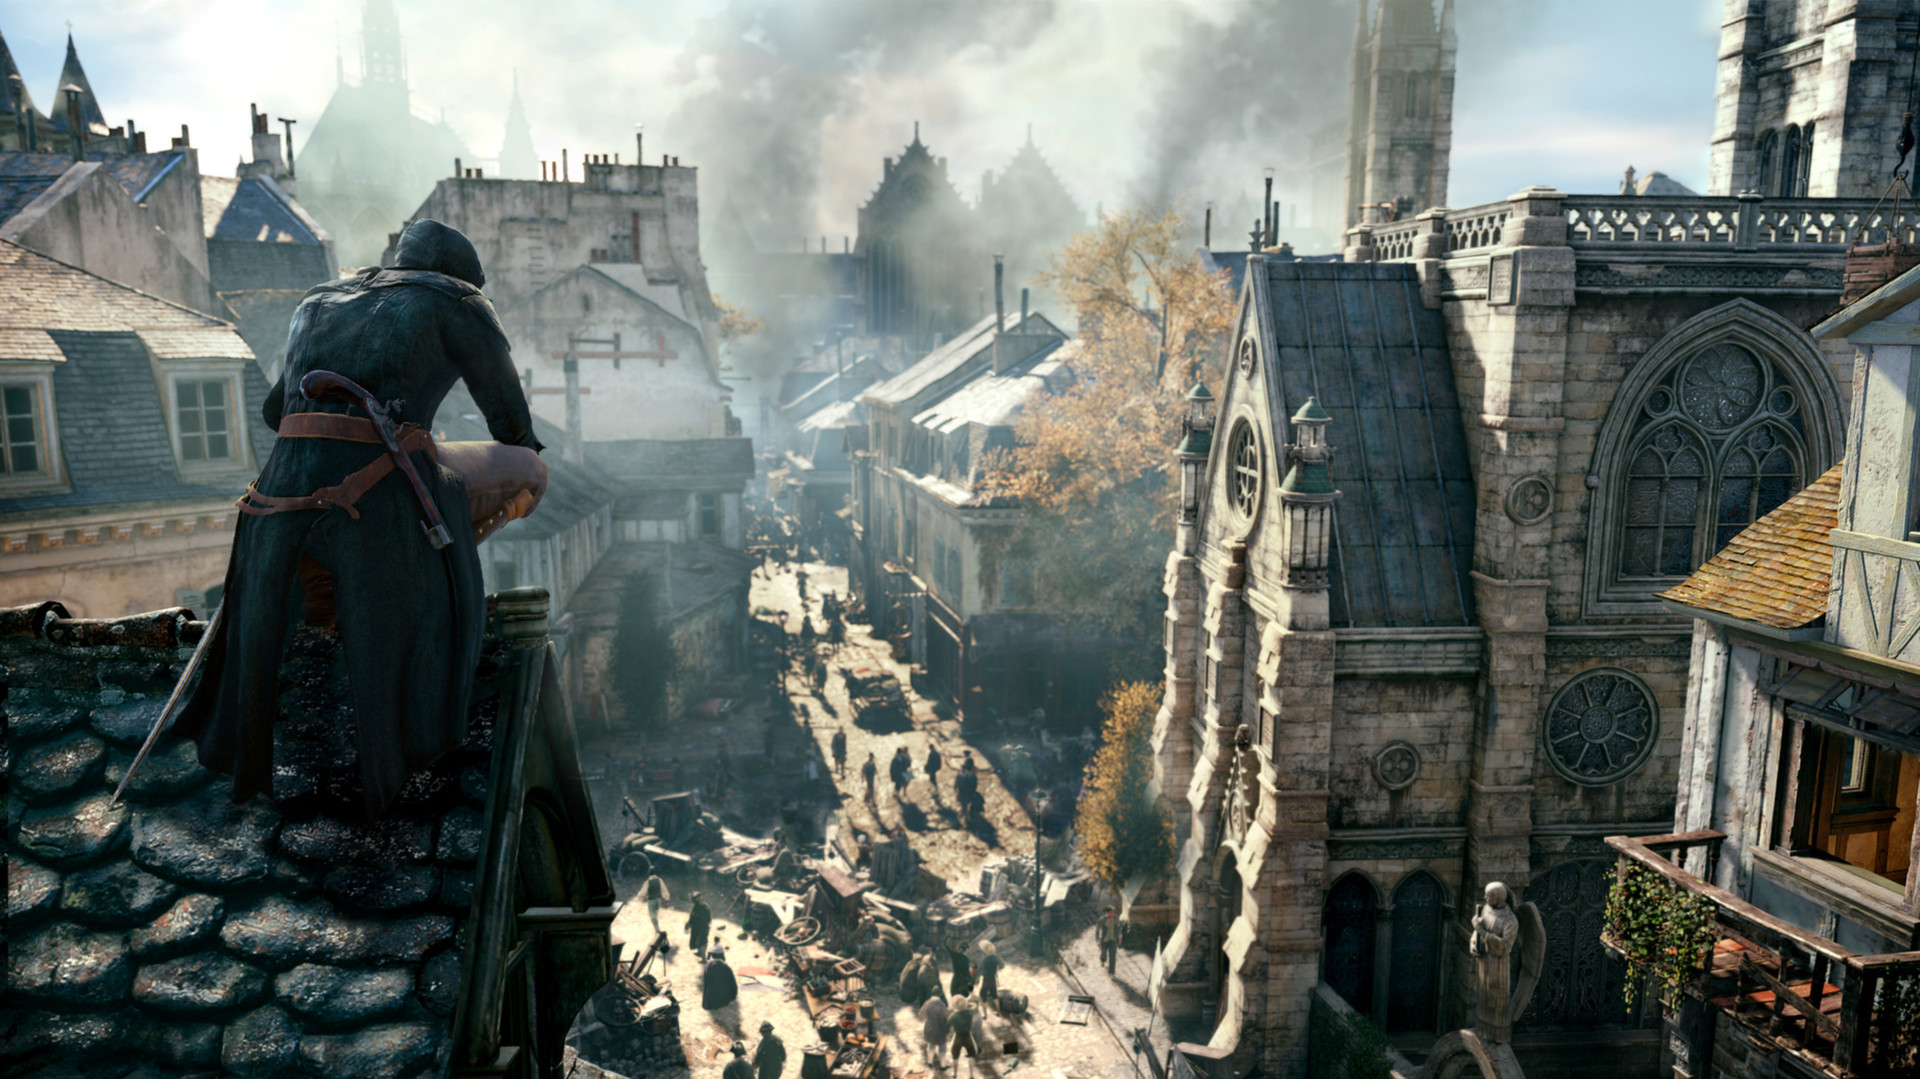 download assassin's creed unity v1.5.0-reloaded skidrow cracked multi 14 language full version free for pc